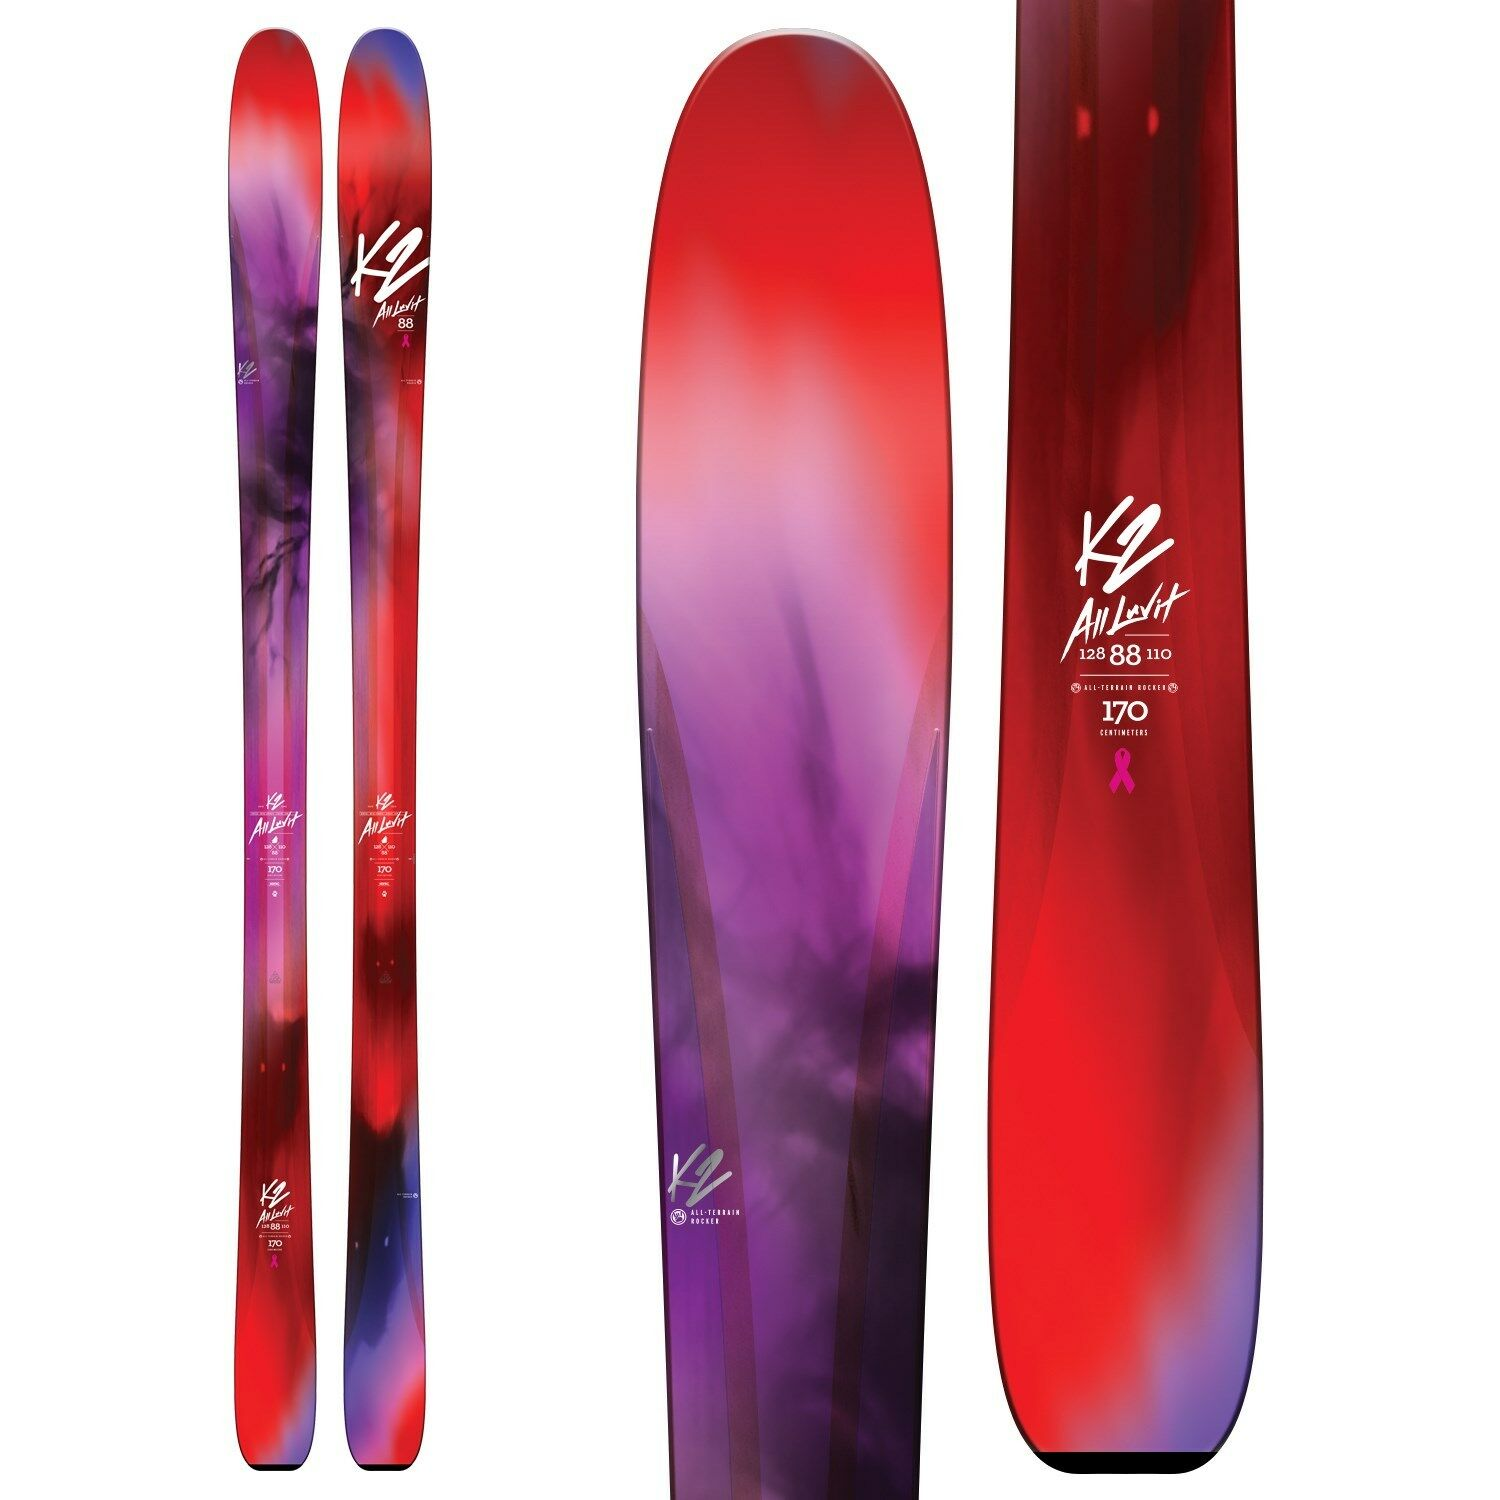 K2 All Luv It 88 ladies snow skis 163cm, NEW 2018 (binding options available)